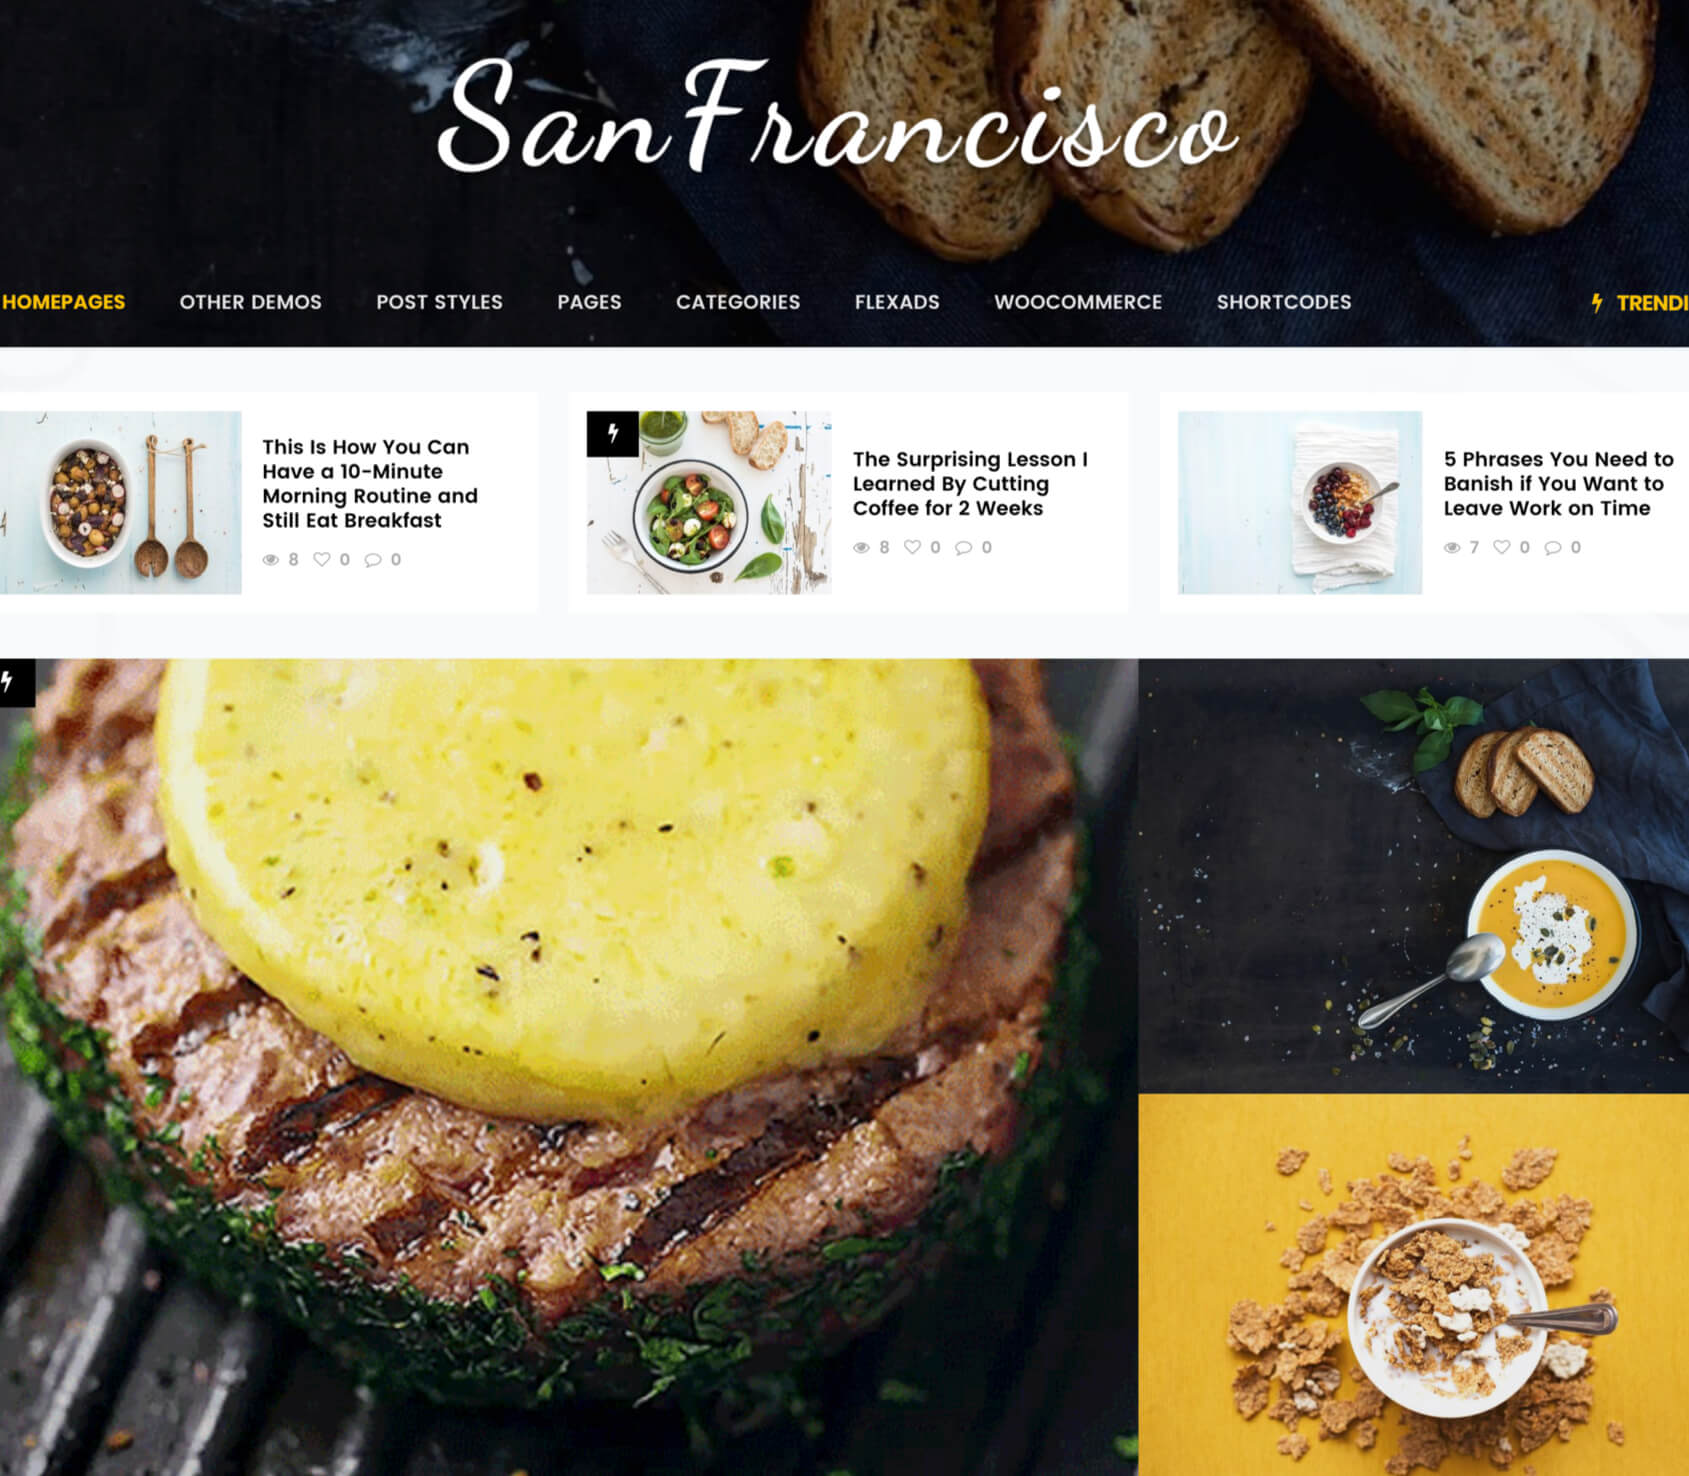 SanFrancisco - MultiConcept Blog & Magazine WordPress Theme